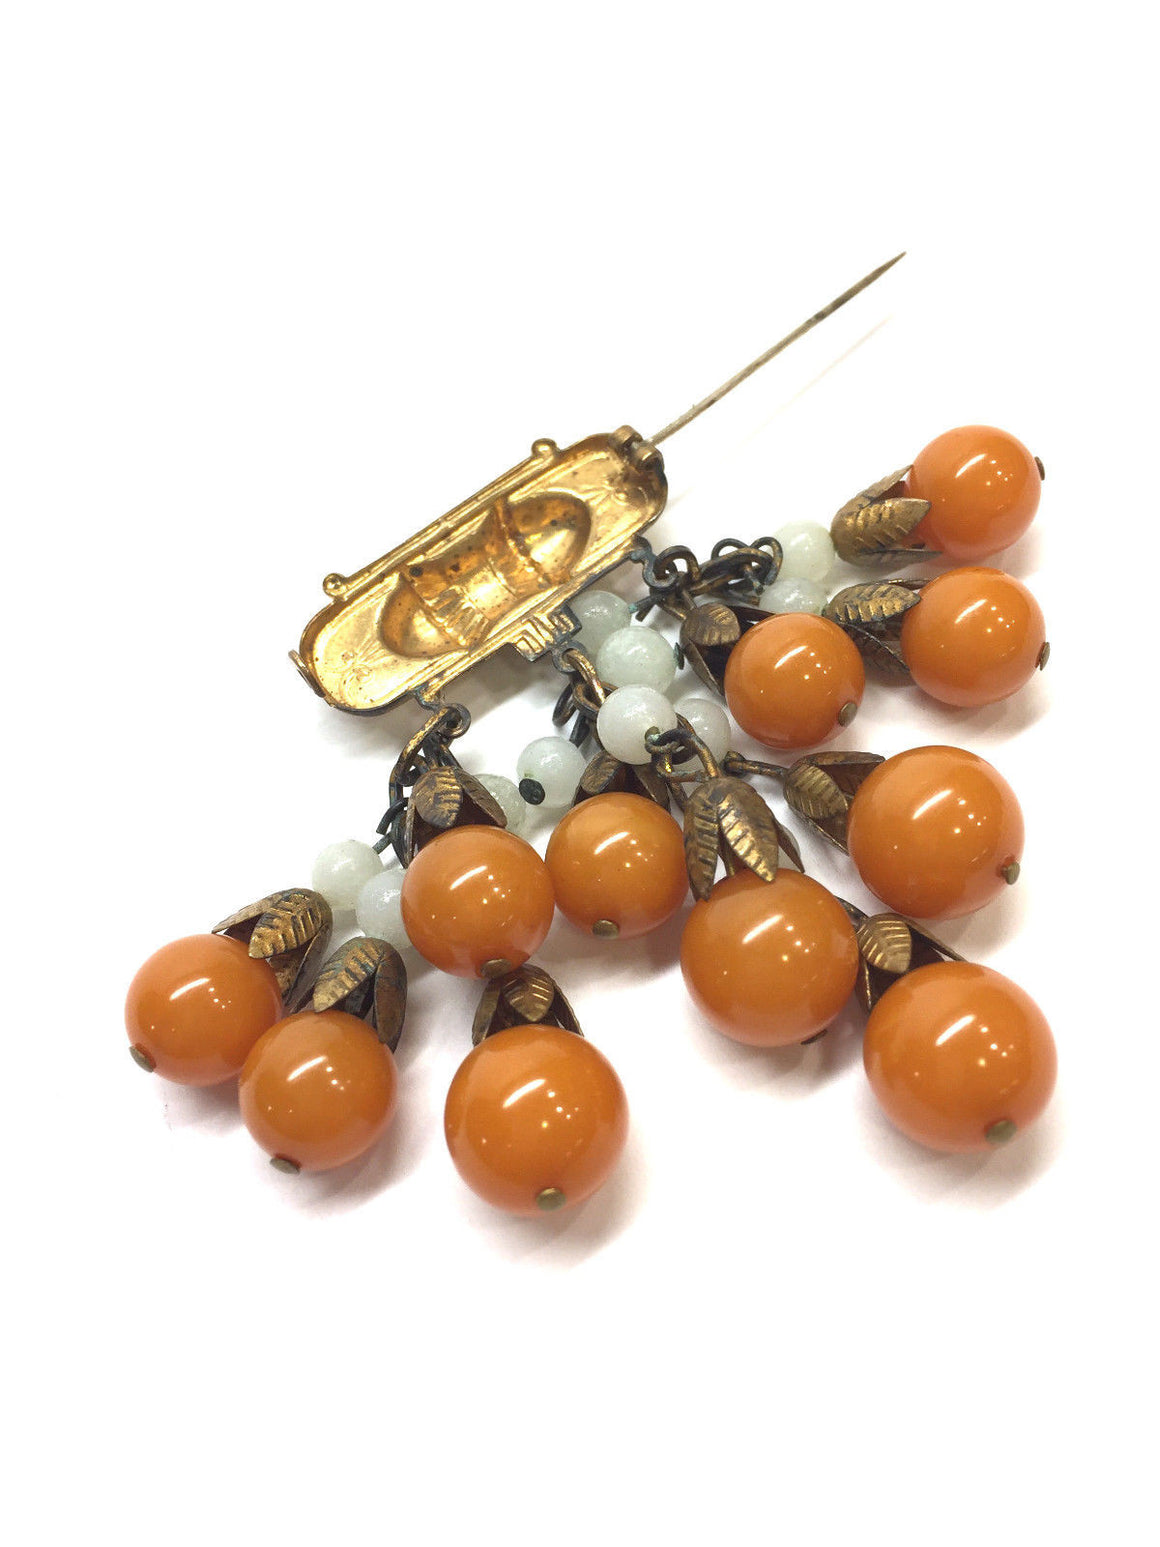 bisbiz.com VINTAGE Unbranded Bronze Bow Bar Cascading Amber Bakelite Beads Pin Brooch - Bis Luxury Resale